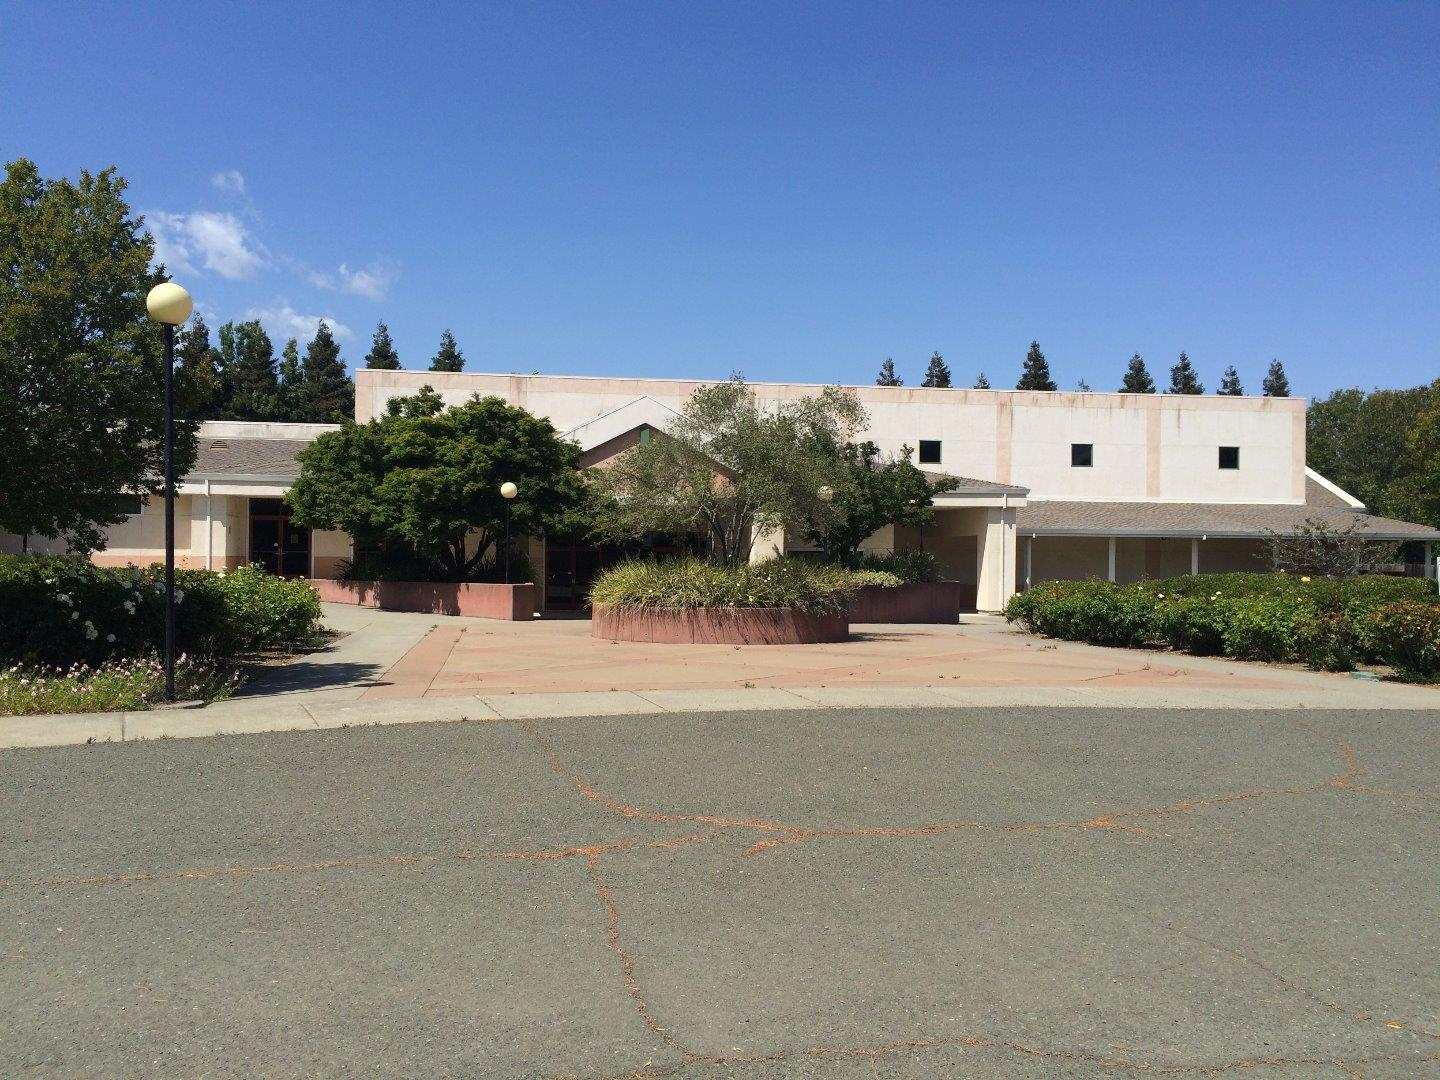 2100 Pennsylvania, FAIRFIELD, CA 94533